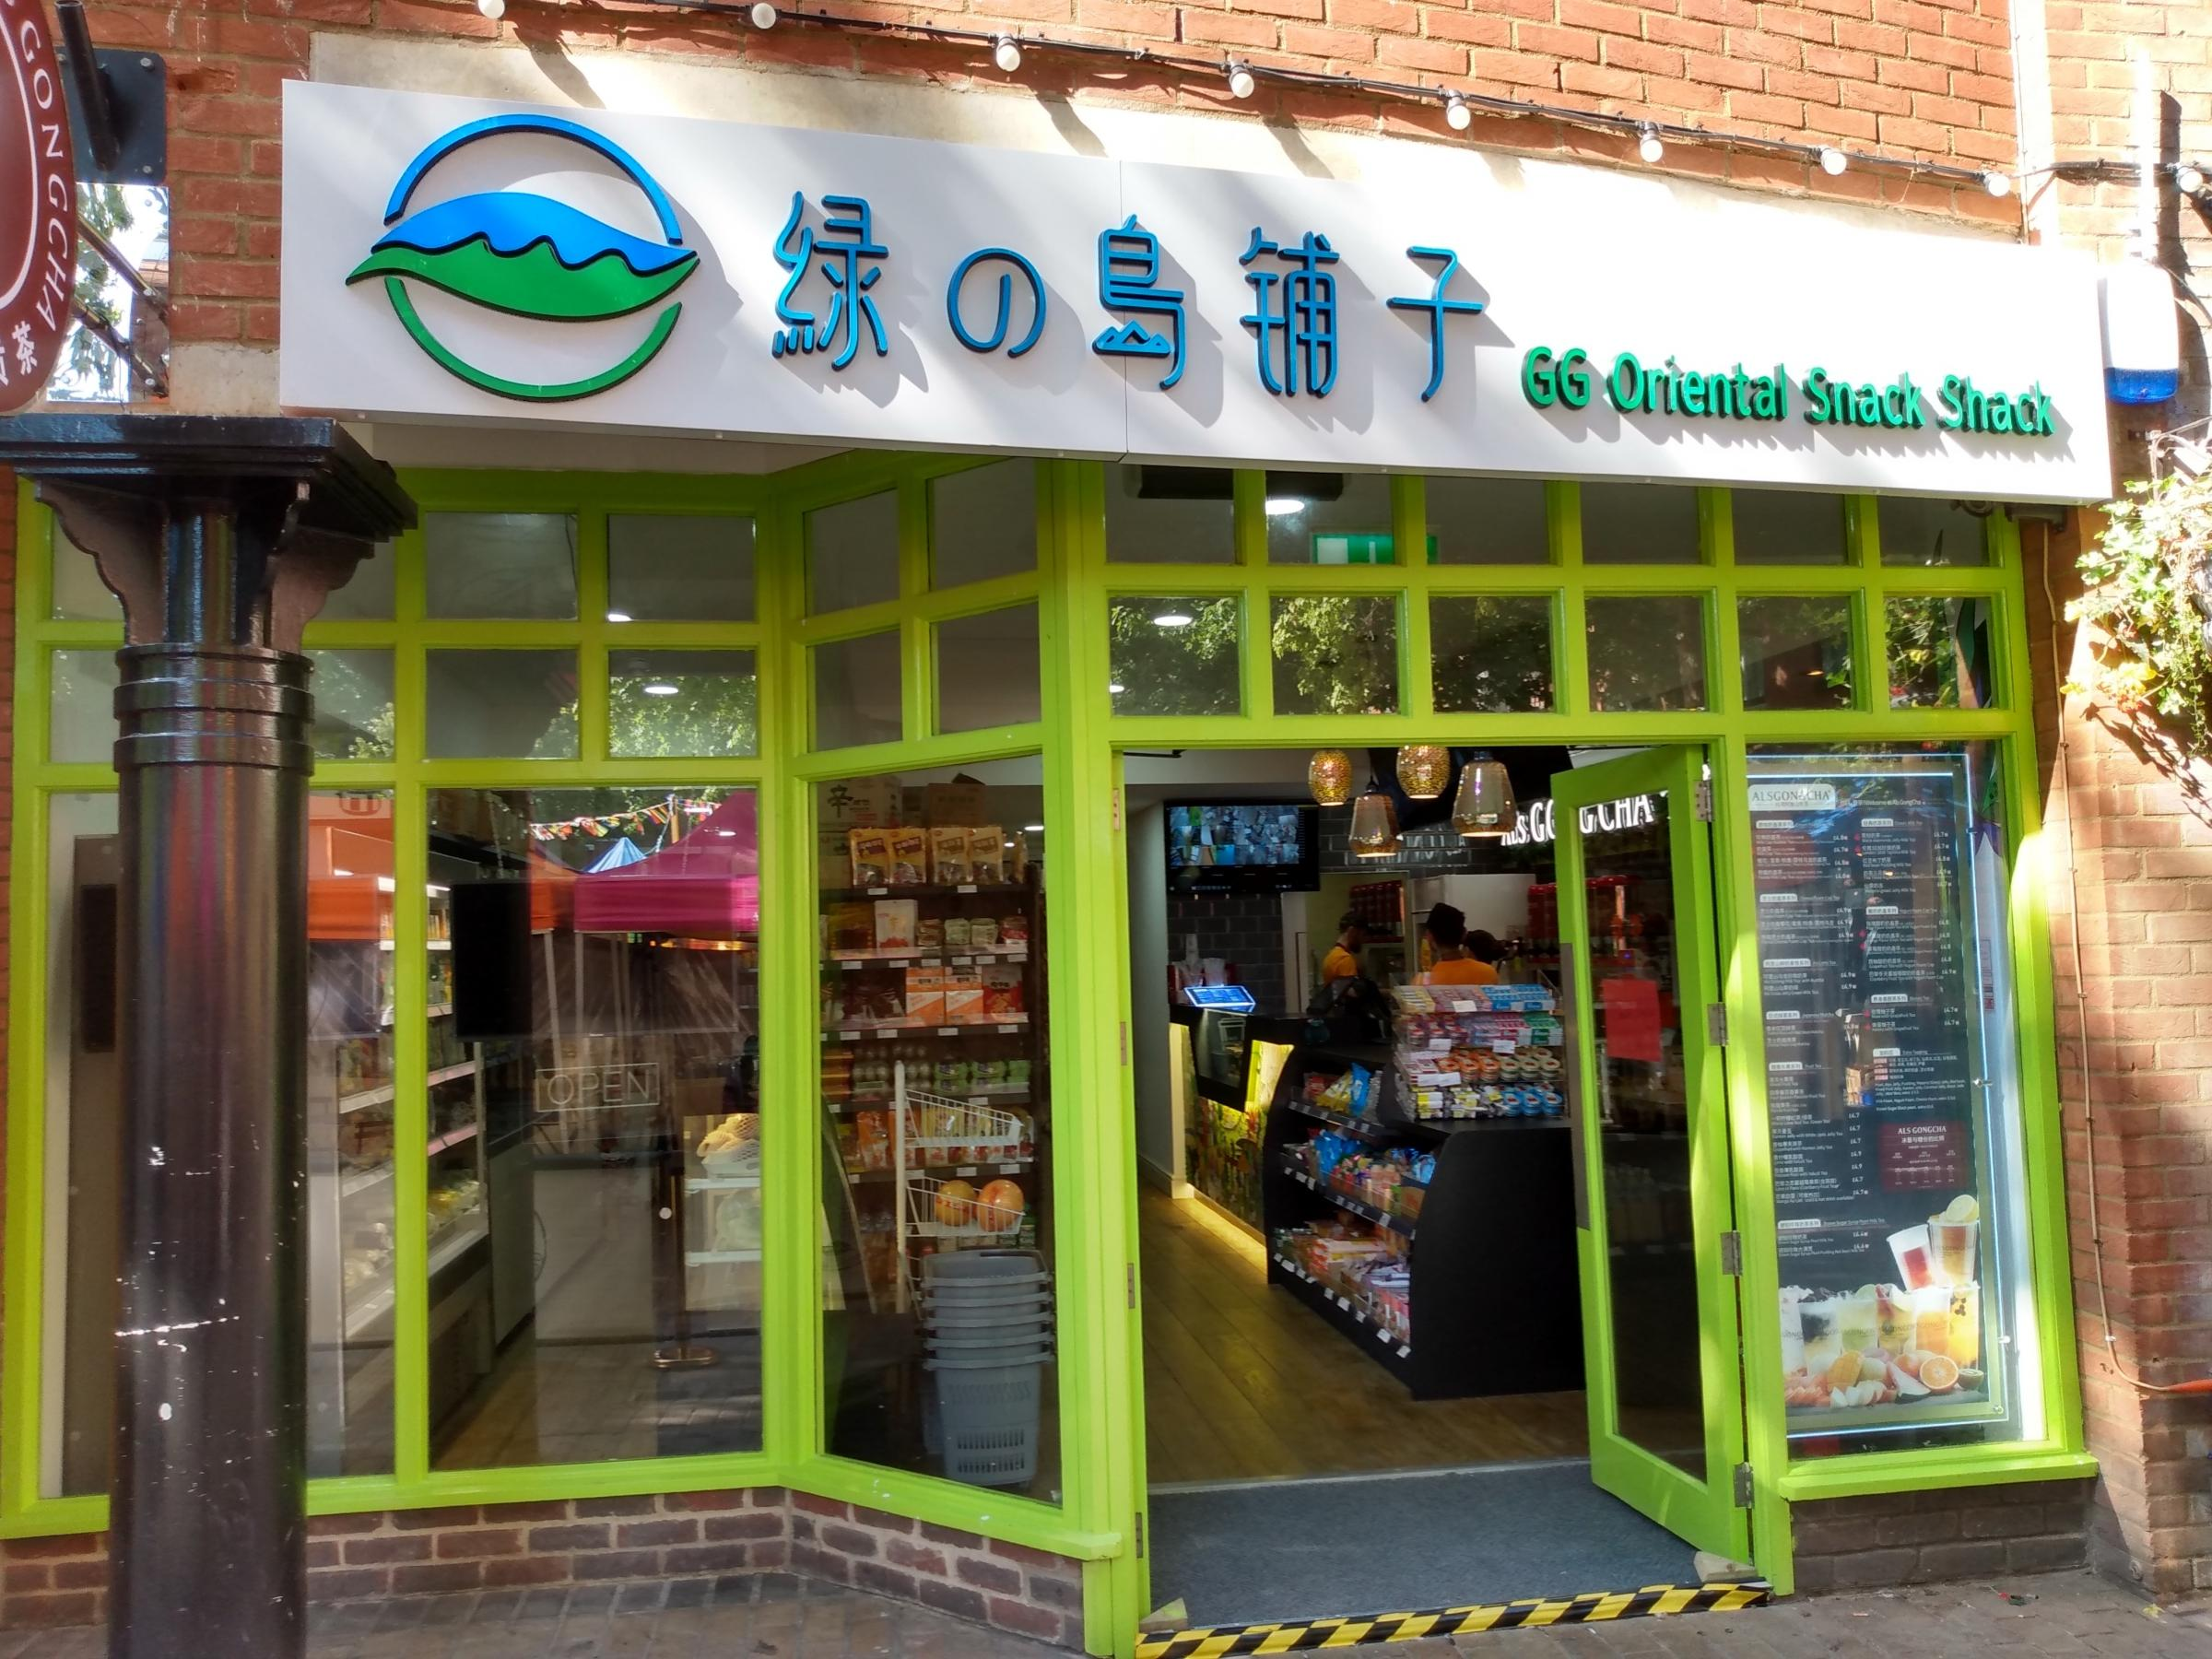 Bubble tea flows at Gloucester Green food store in Oxford